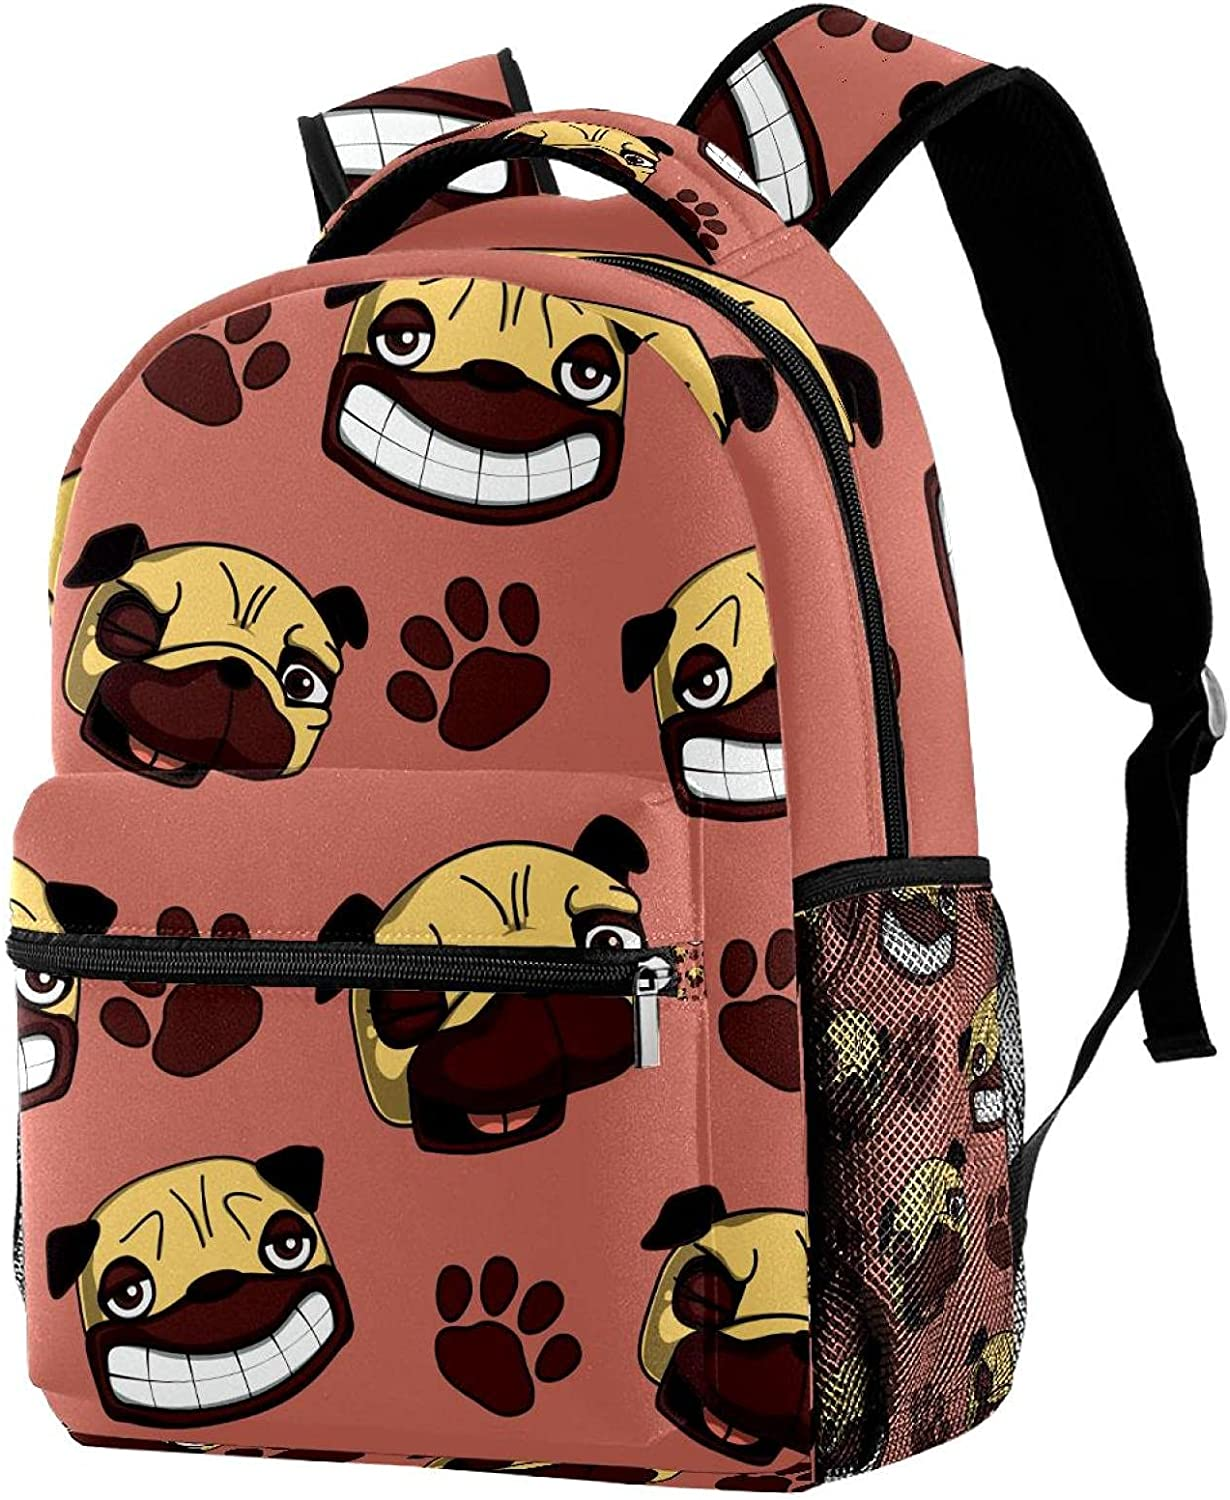 Lightweight Backpack for Girls Boy School Travel OFFicial store Bag Dog Daypack Dealing full price reduction